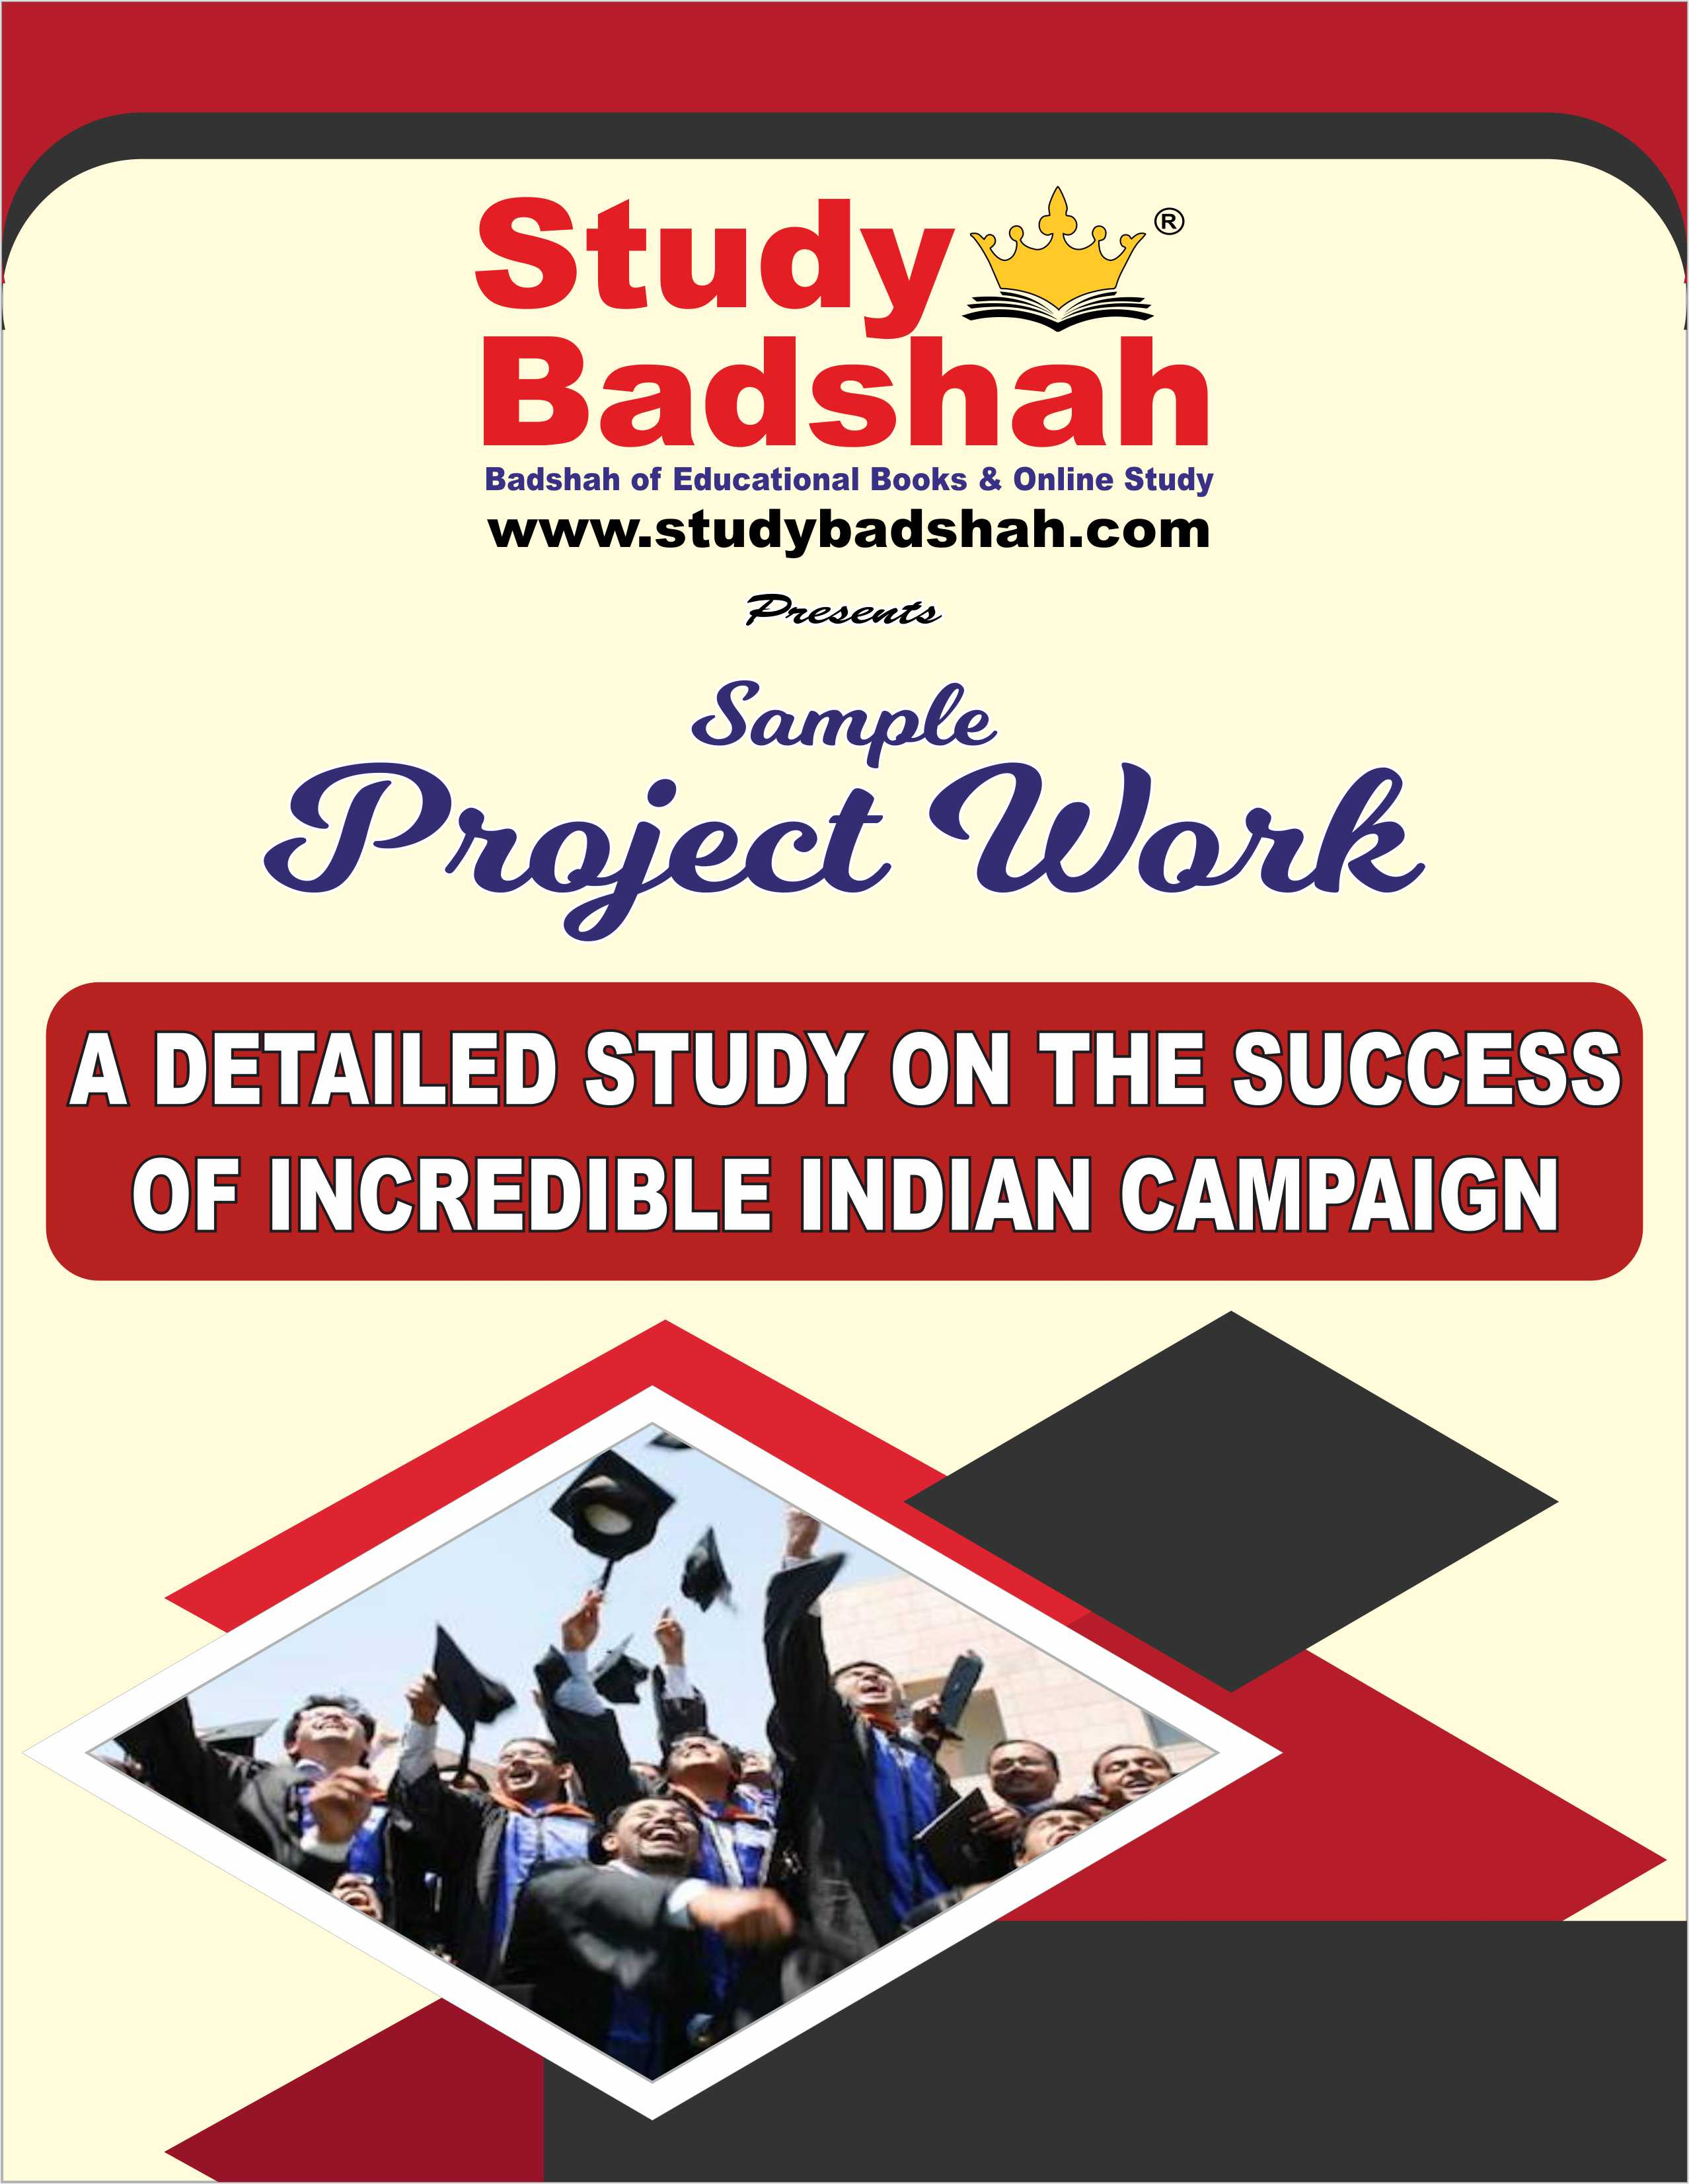 A Detailed Study on the Success of Incredible Indian